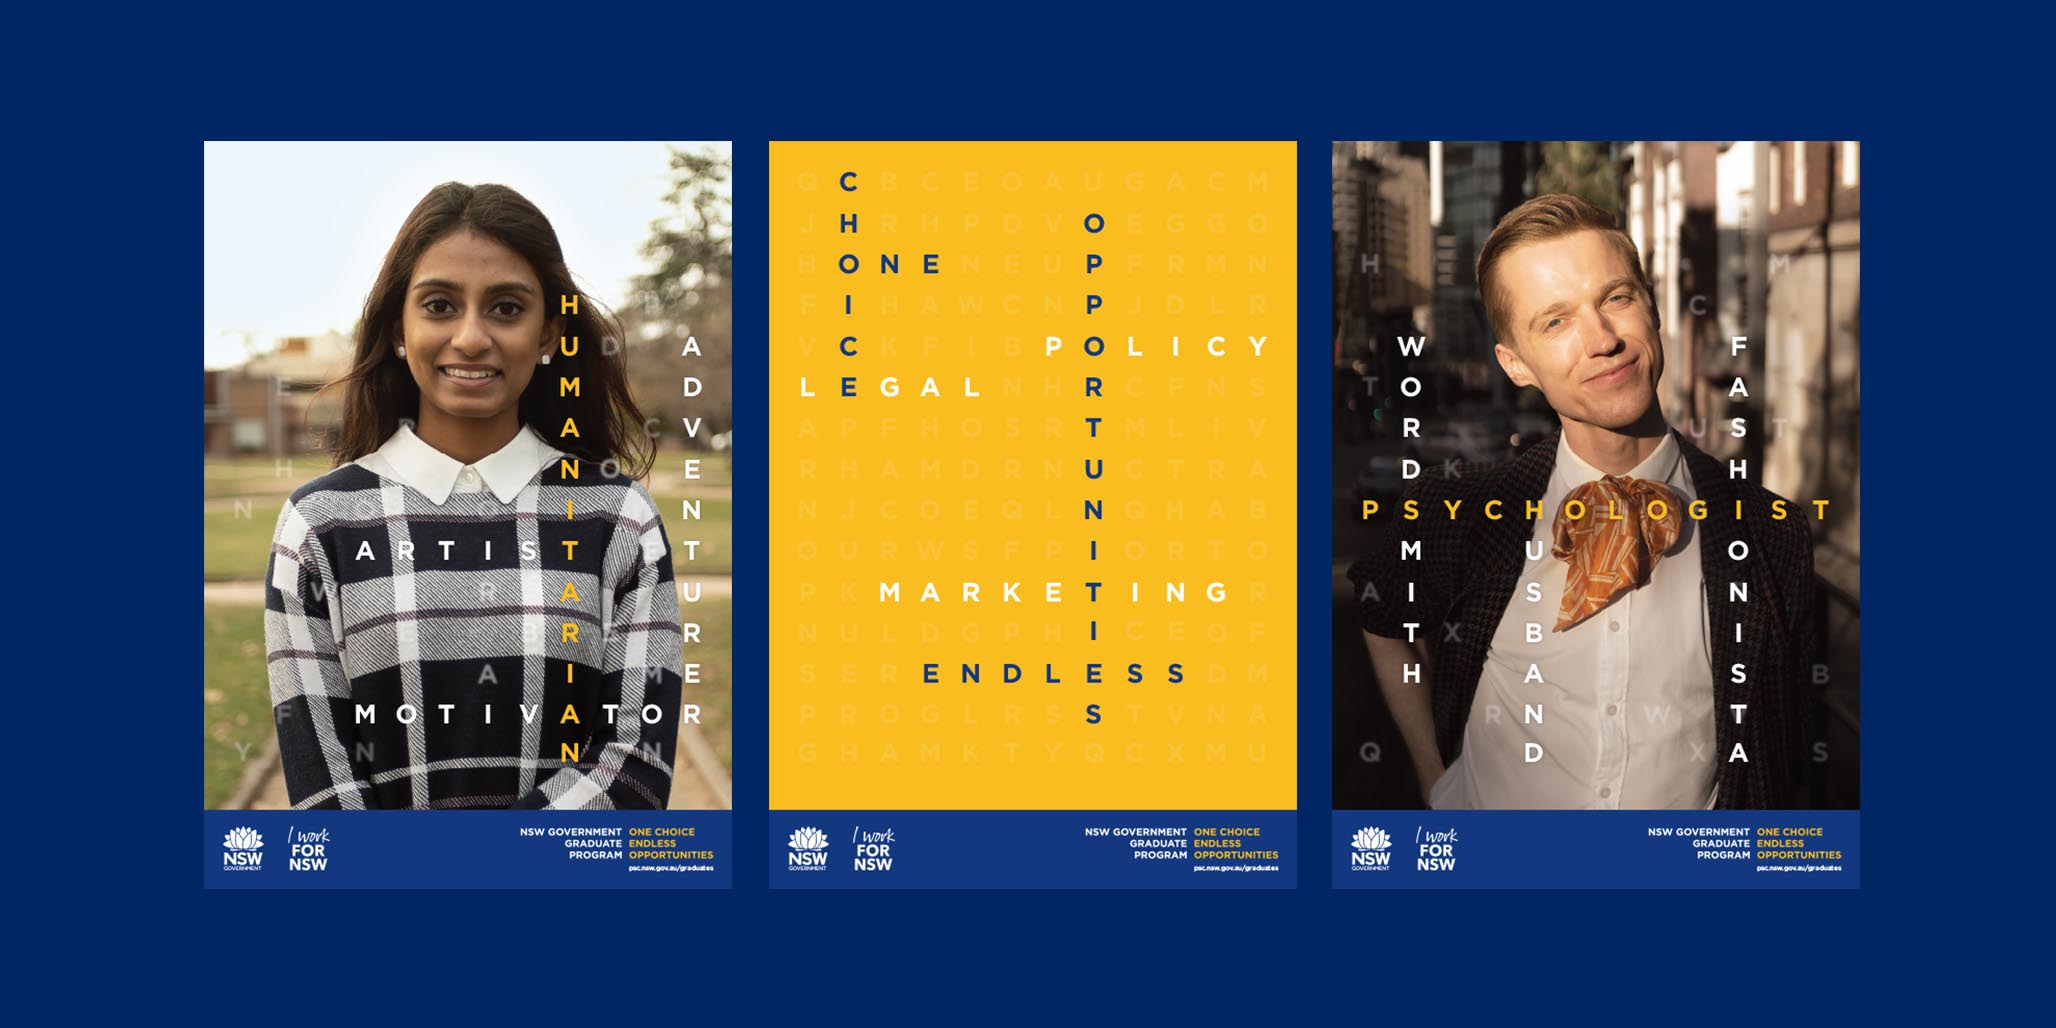 Brand Identity & Creative Campaign Design project for NSW Government Agency to promote professional services employment and career opportunities in Sydney & Australia, image H